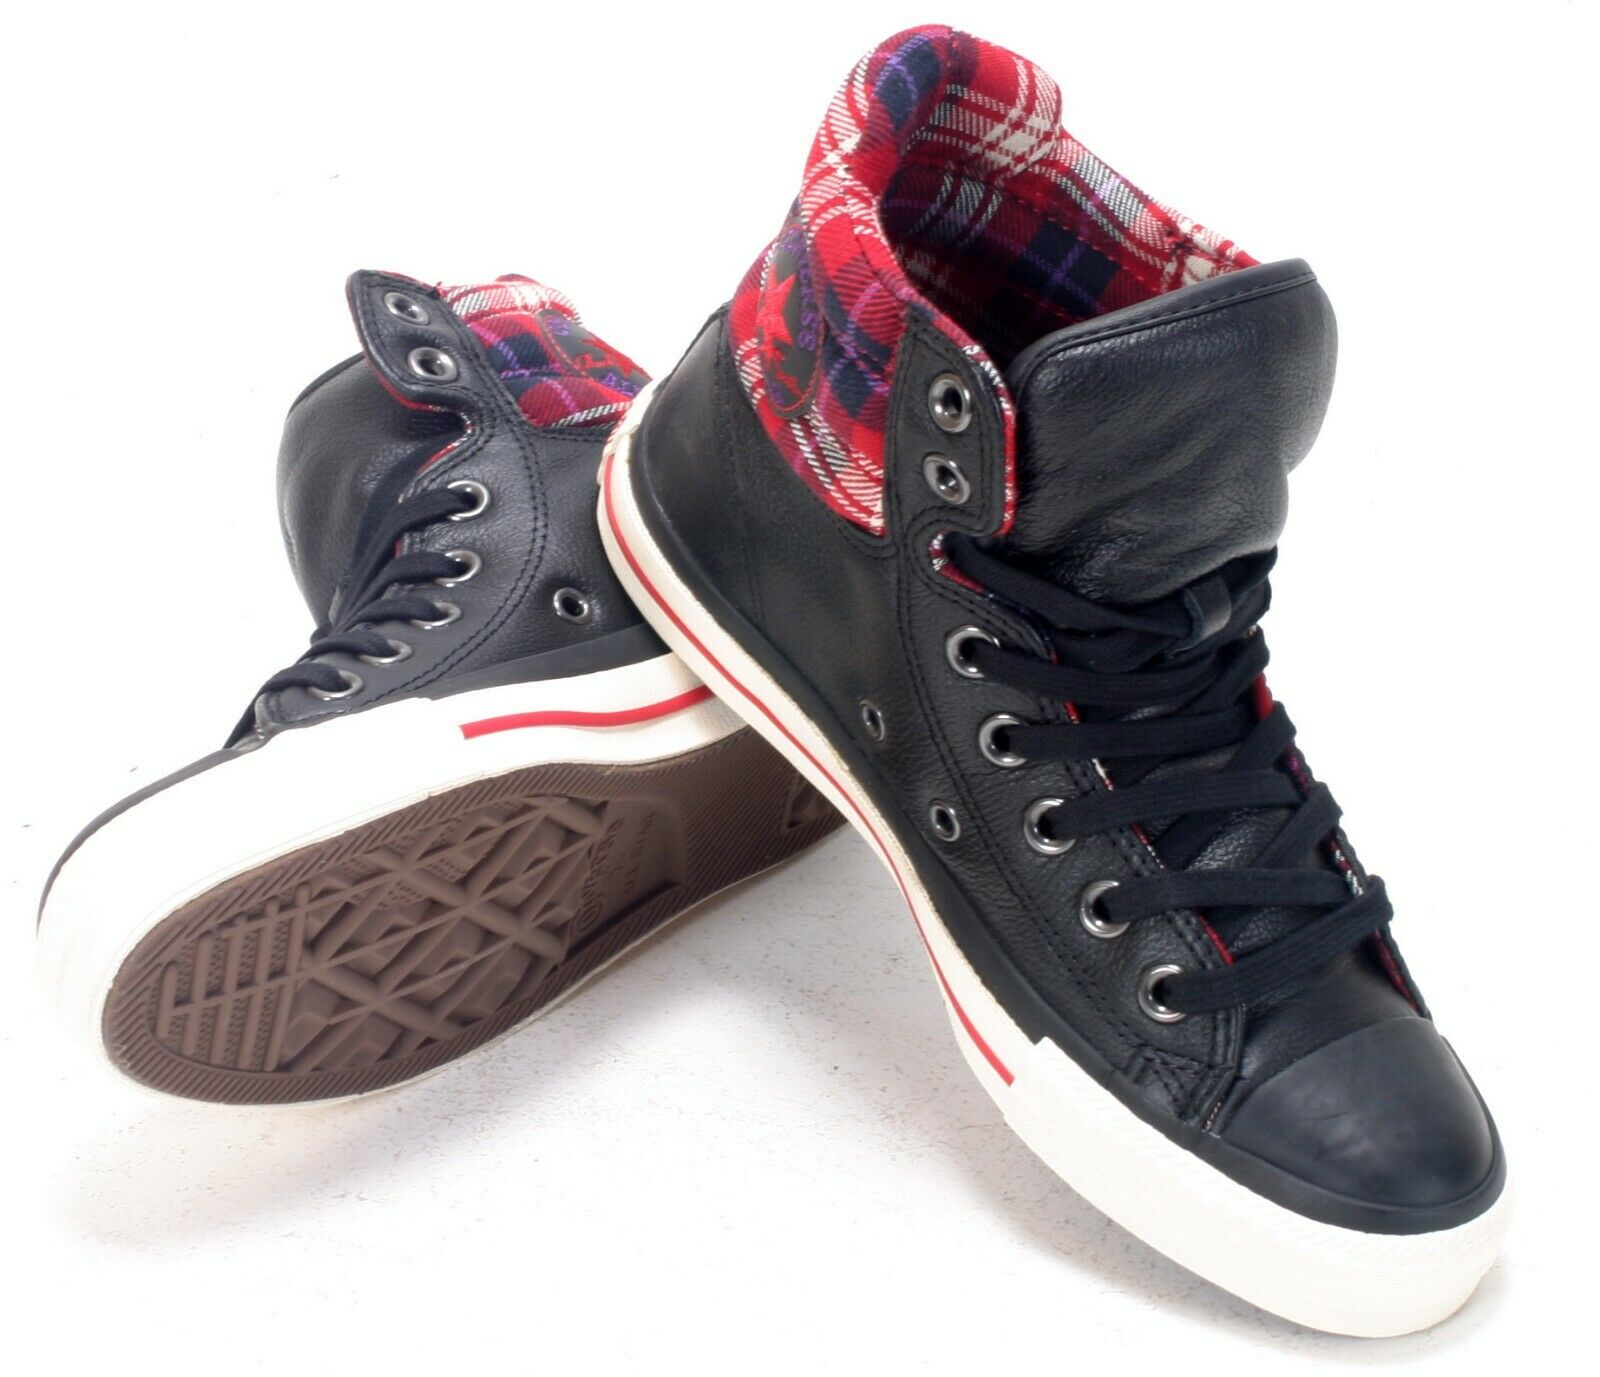 CONVERSE UNISEX PADDED REAR BLACK RED HI-TOP UK 3.5 EU36 113256